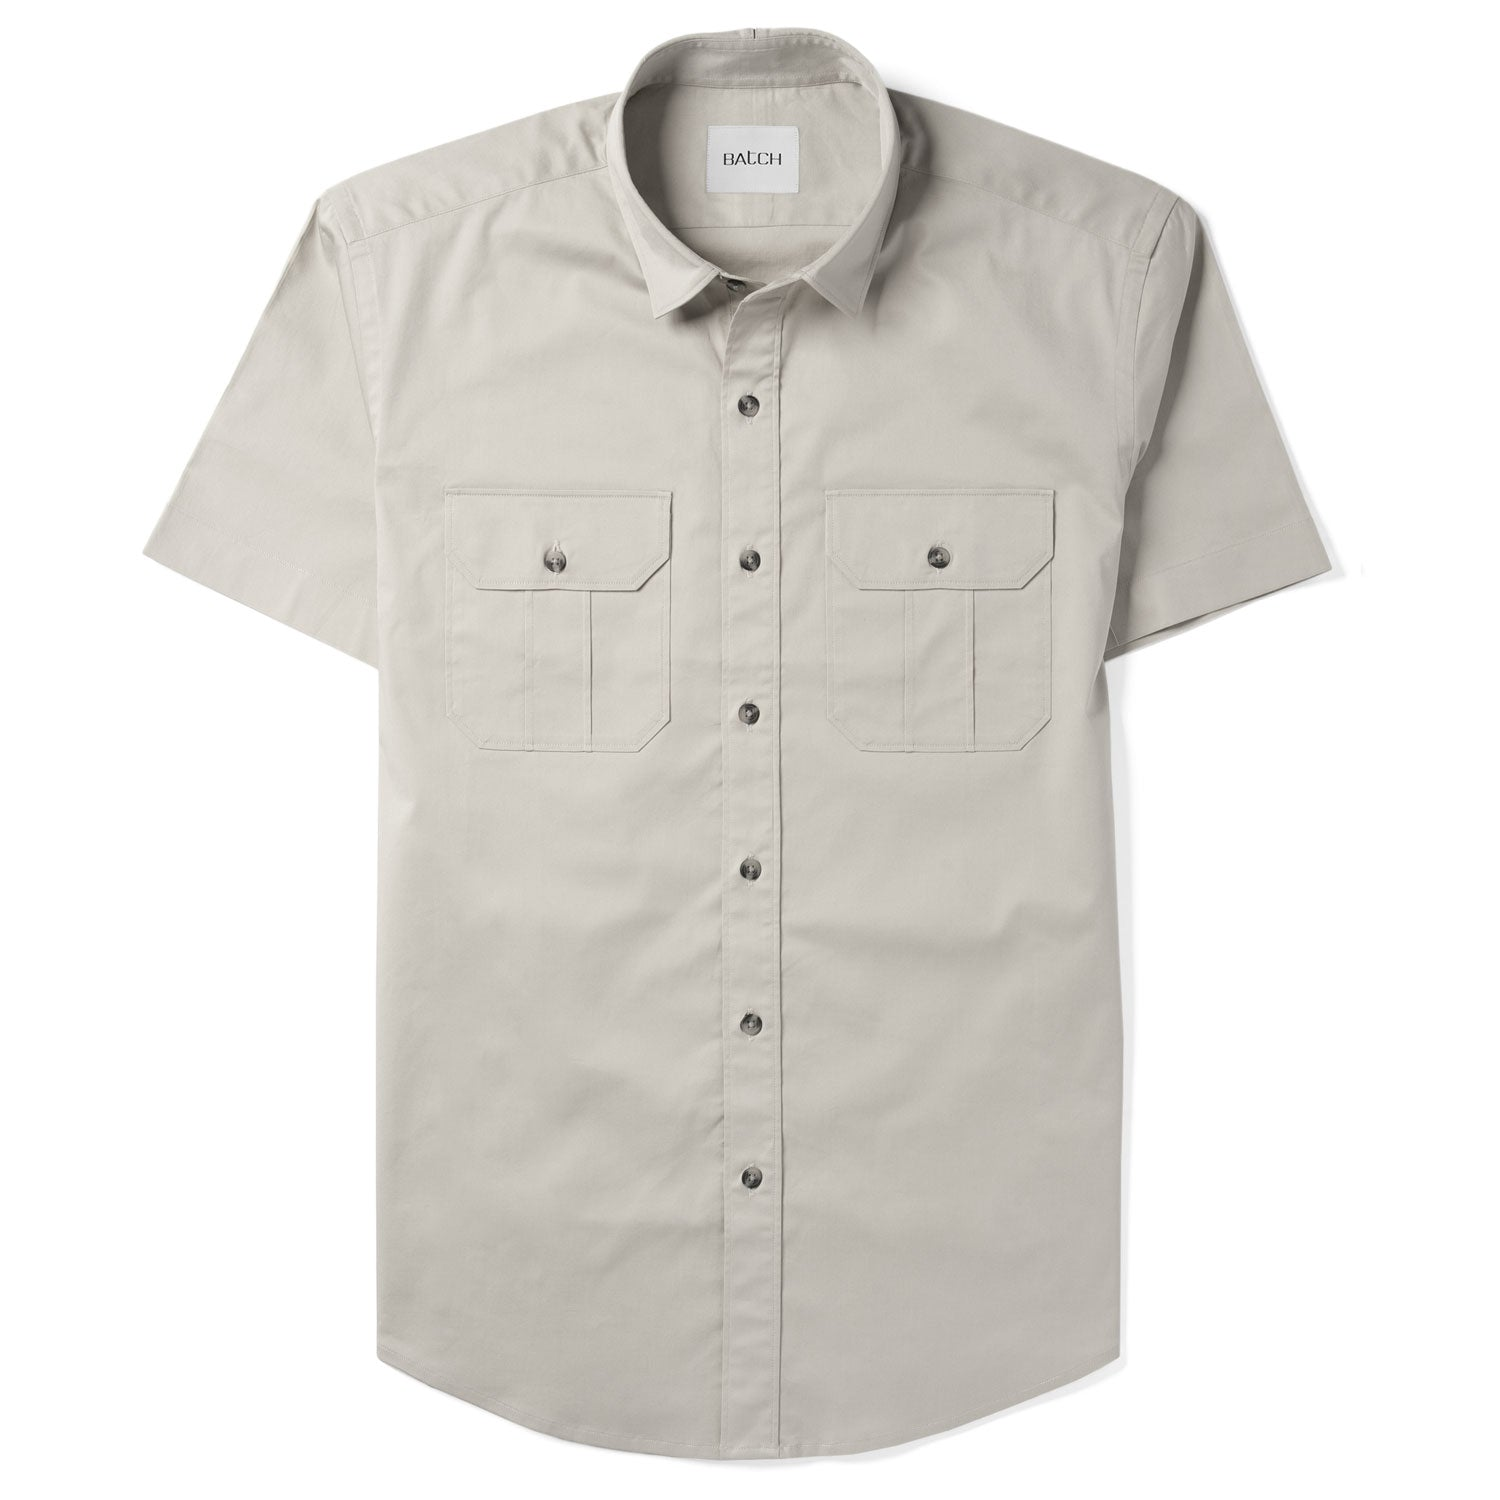 Constructor Short Sleeve Utility Shirt –  Cement Gray Cotton Stretch Twill